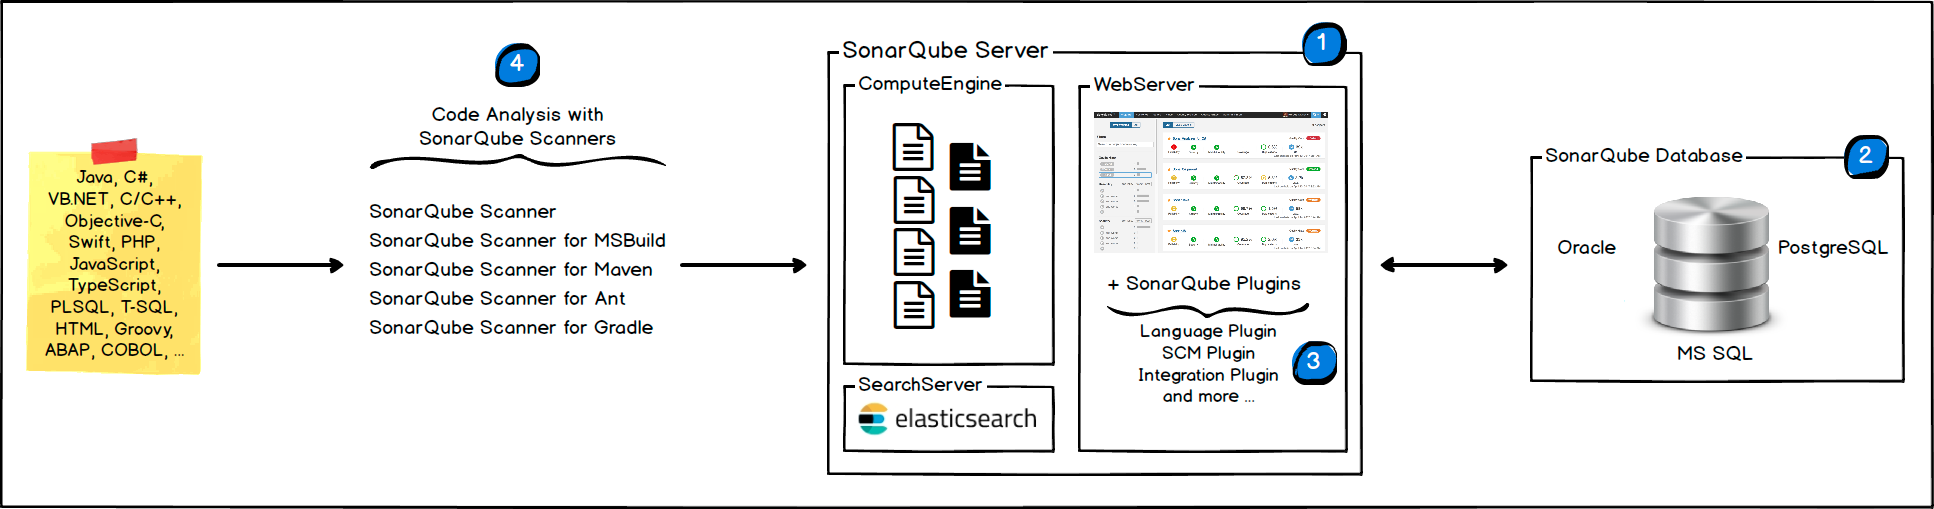 Architecture and Integration | SonarQube Docs